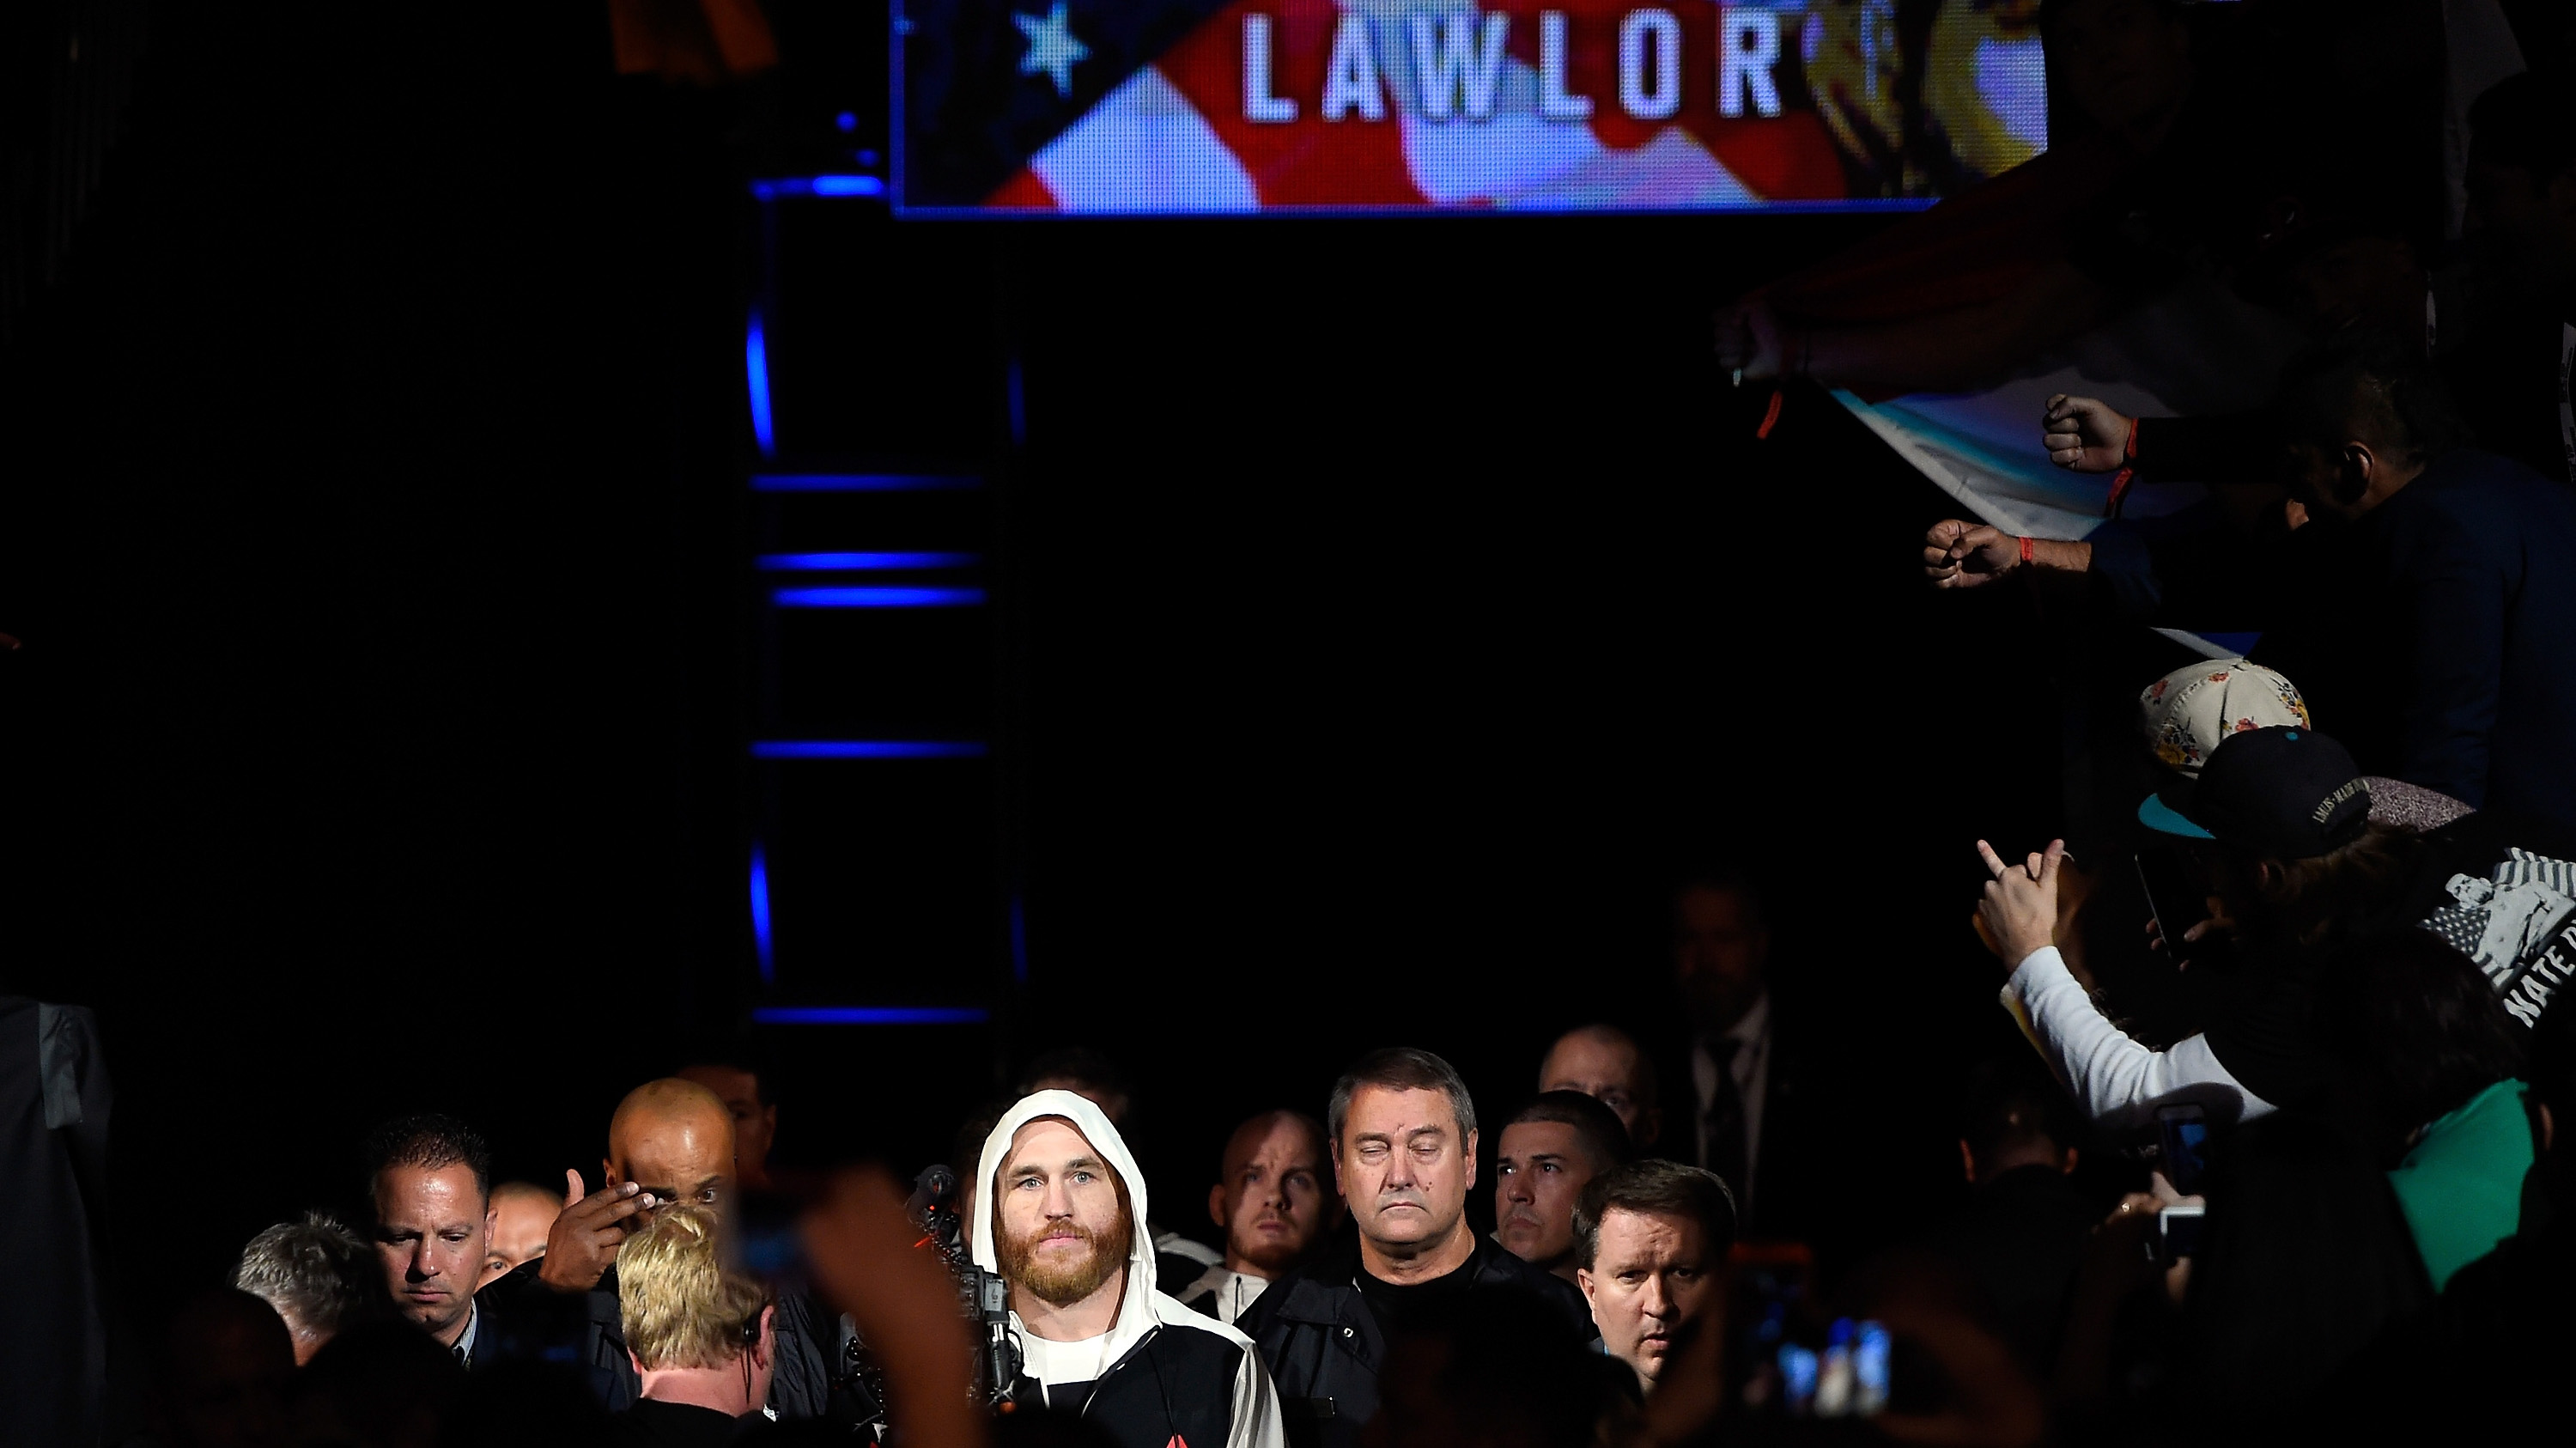 Lawlor's early walkouts provided quite the entertainment (Photo by Josh Hedges/Zuffa LLC/Zuffa LLC via Getty Images)